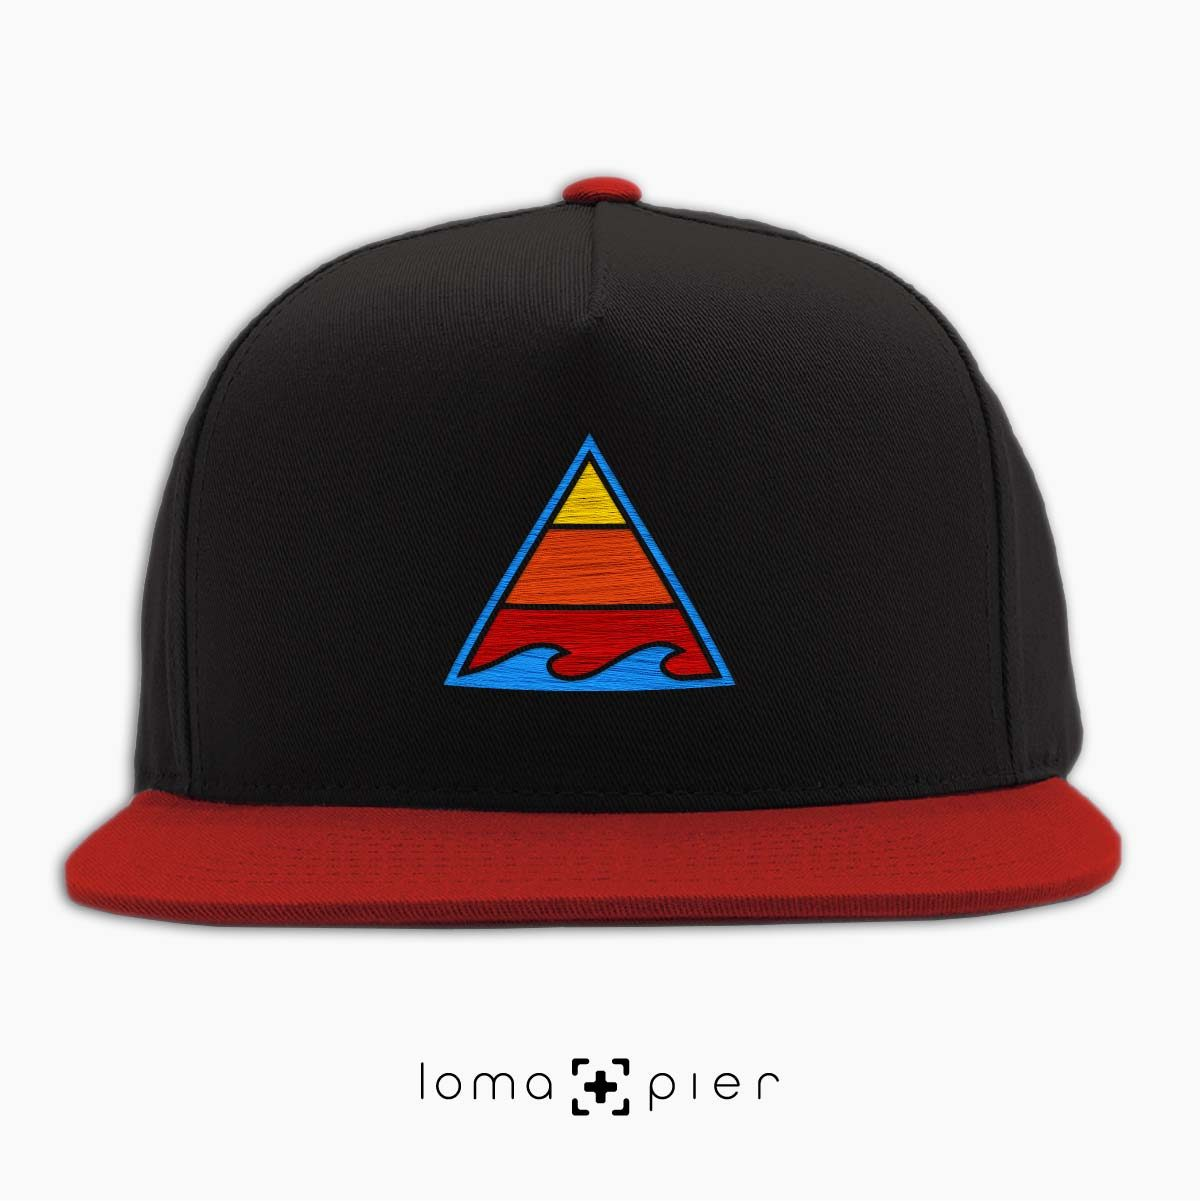 RIDE THAT WAVE hat in black red by loma+pier hat store